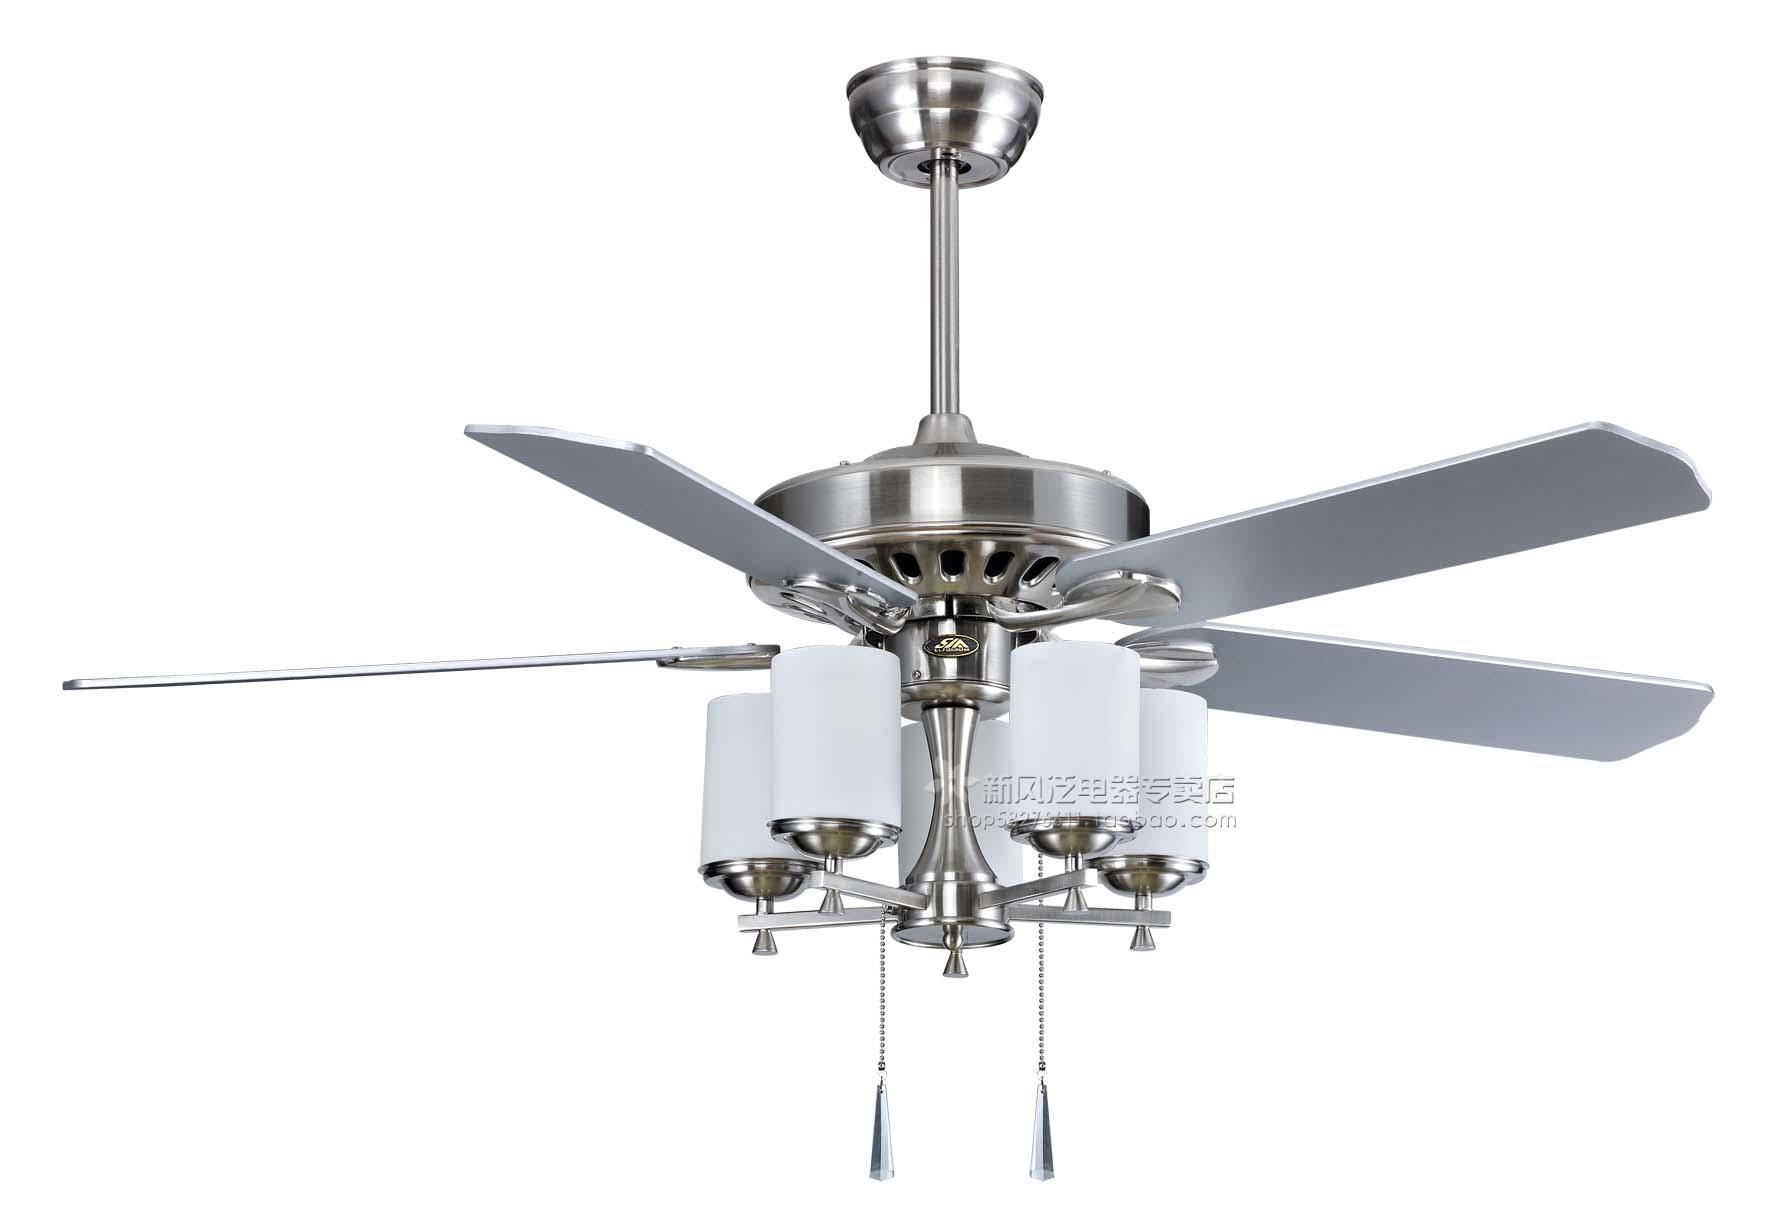 Best Contemporary Ceiling Fans Contemporary Ceiling Fans With Light Homesfeed